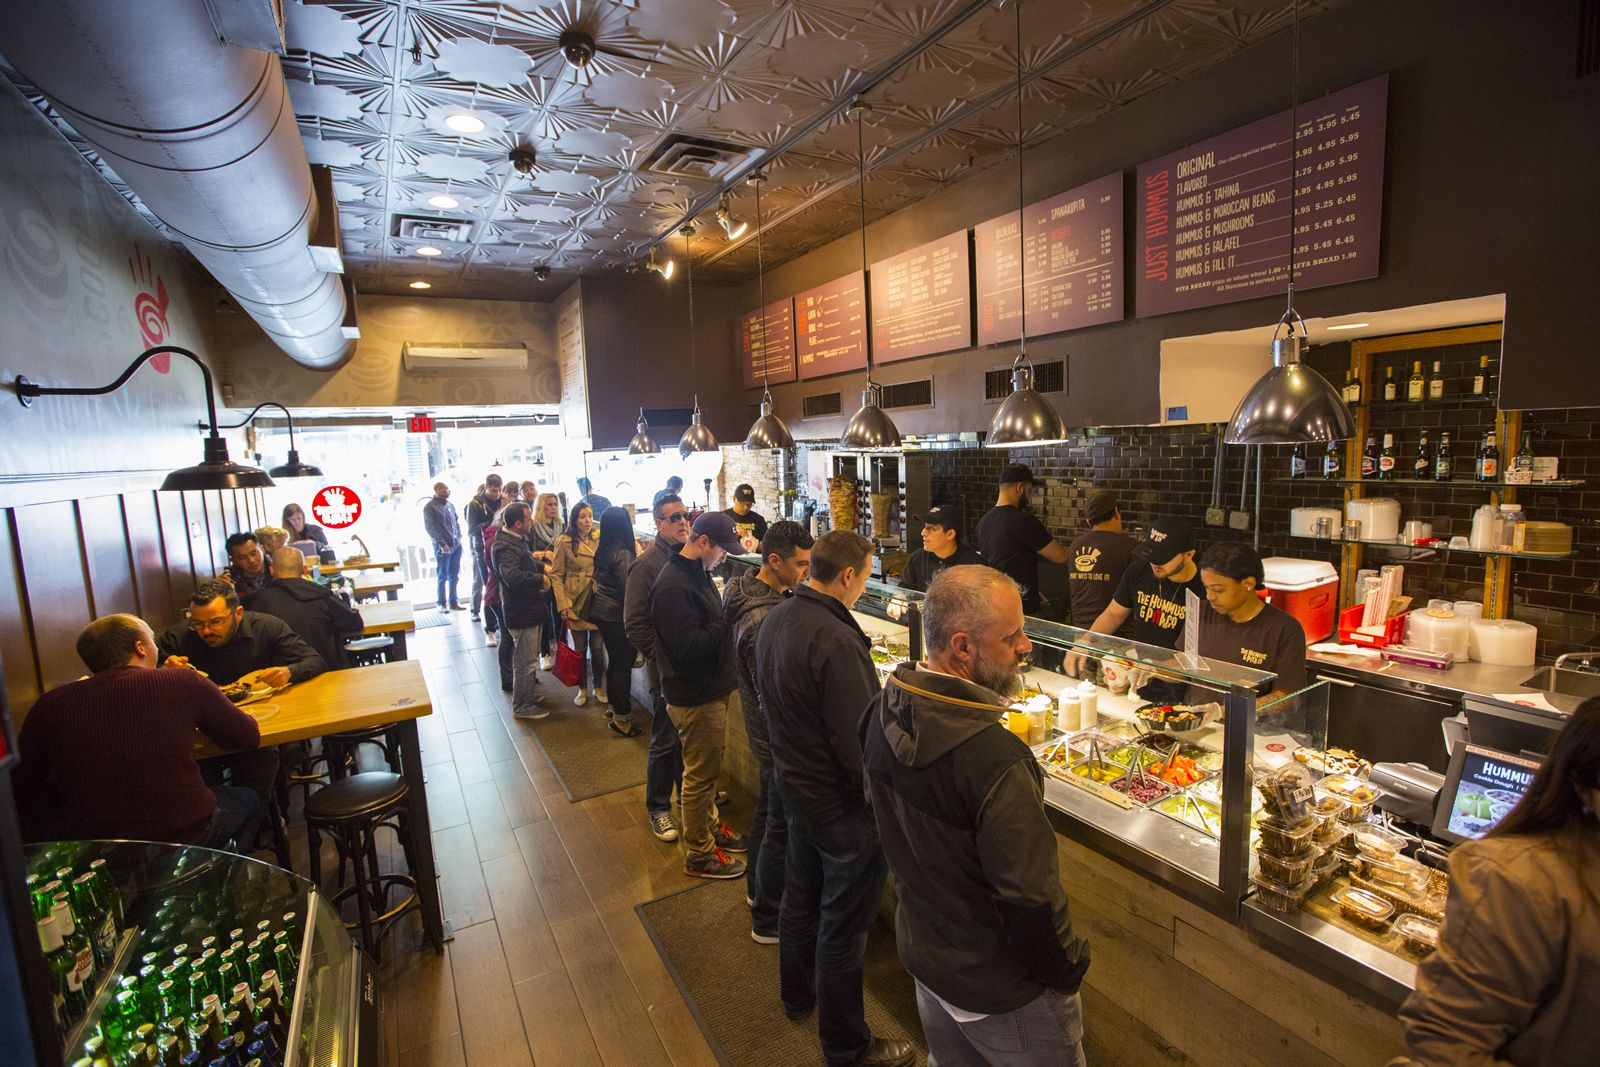 One of the country's leading Mediterranean fast casual franchised concepts, The Hummus & Pita Co., has announced the opportunity to become a part of the Hummus & Pita Co. franchise family through a multi-unit franchise giveaway.